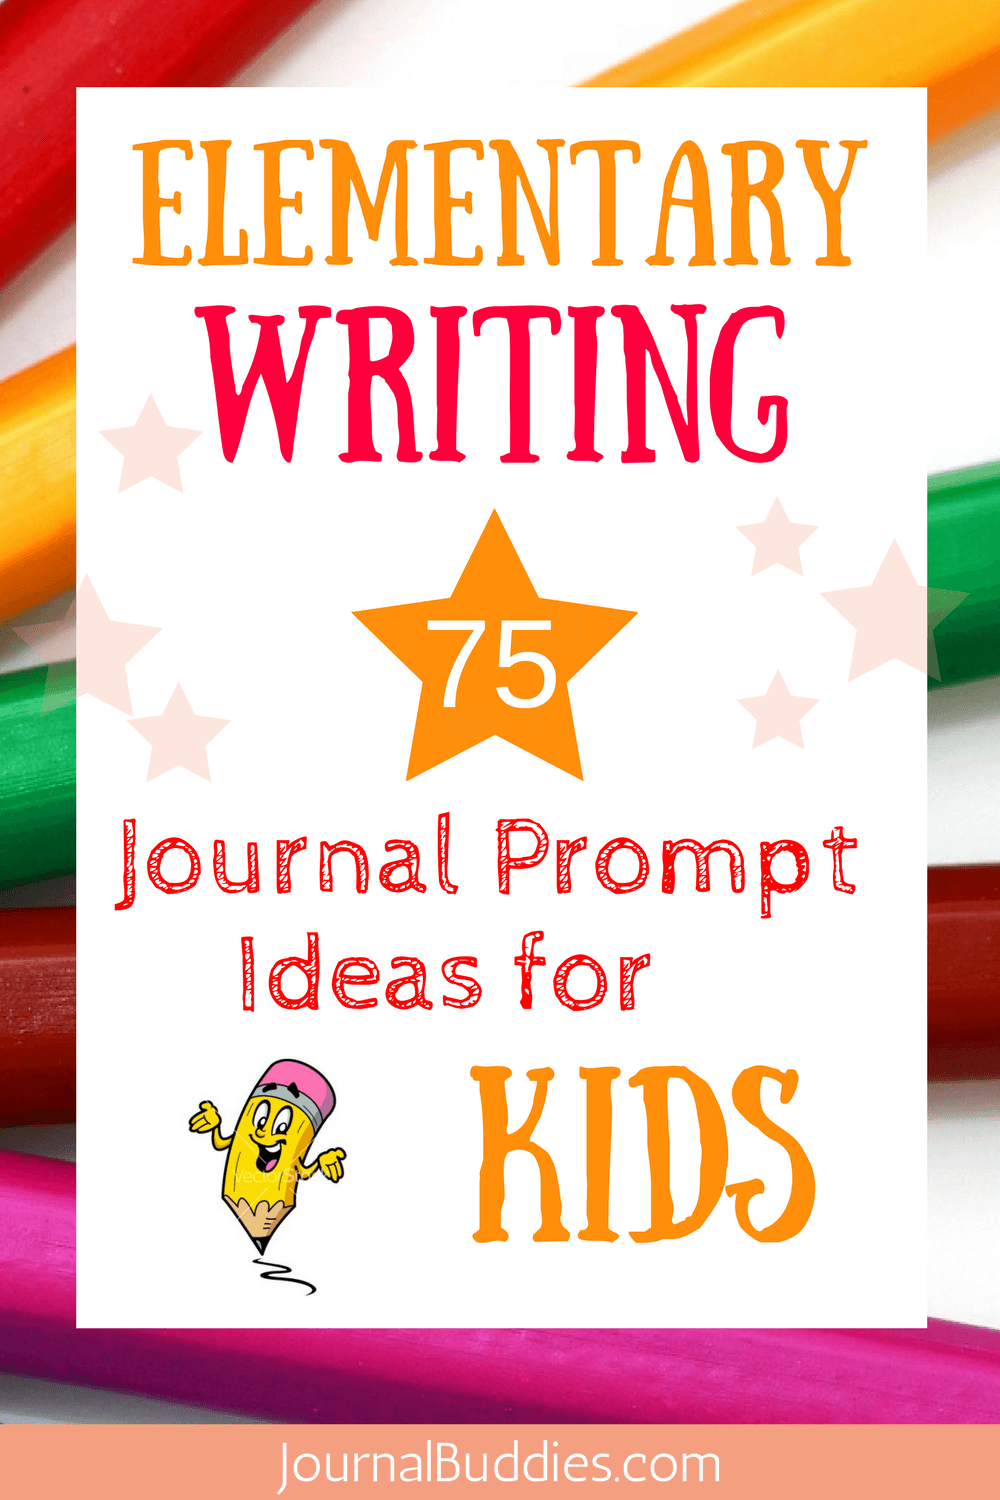 Elementary Writing - 75 Journal Prompt Ideas for Kids